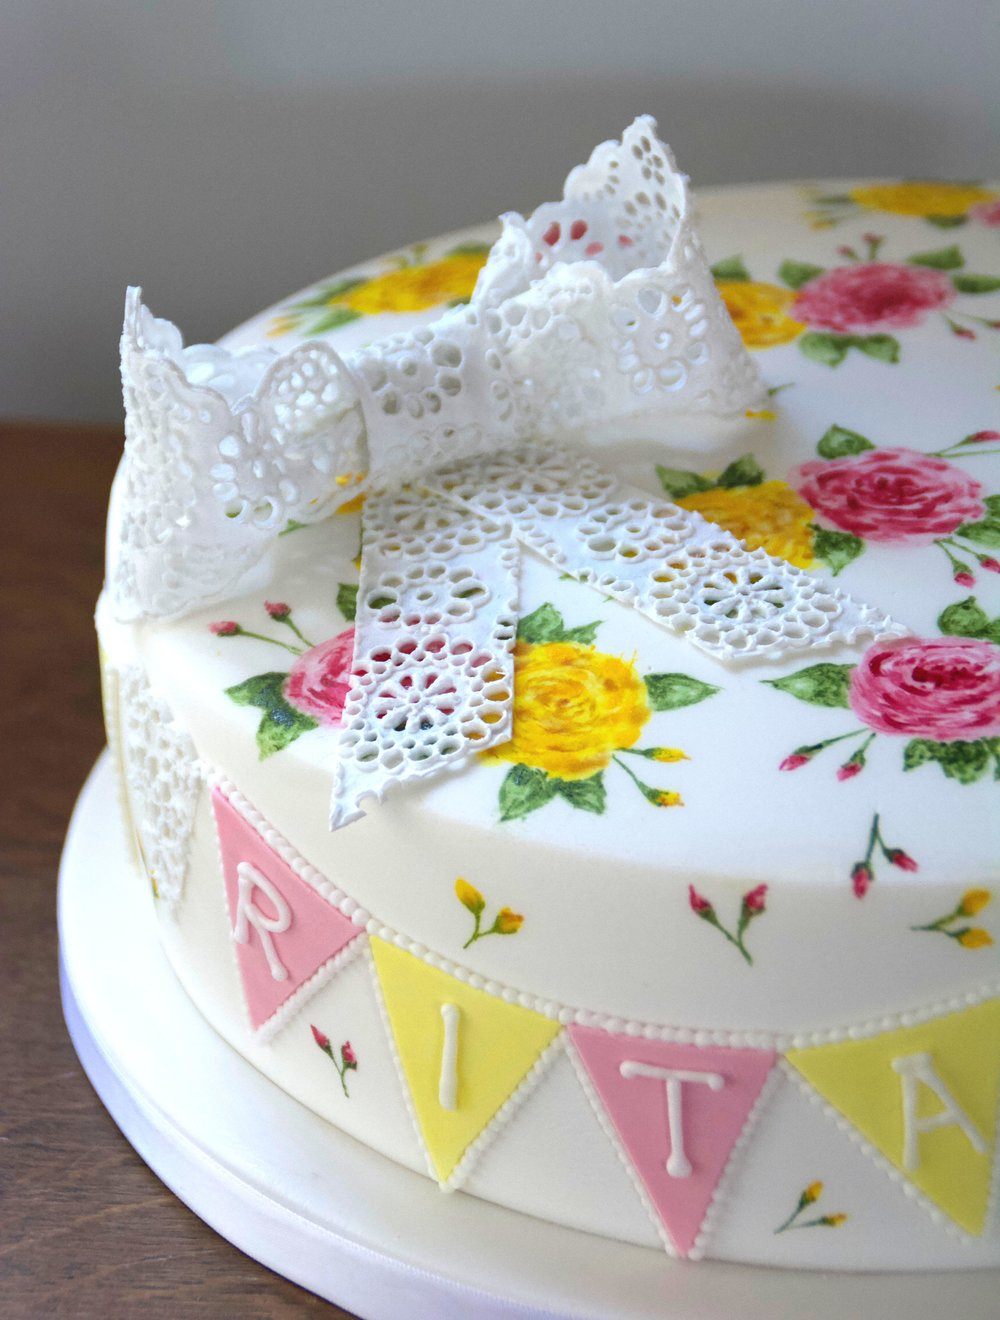 IMG_handpainted_vintage_rose_celebration_cake.jpg